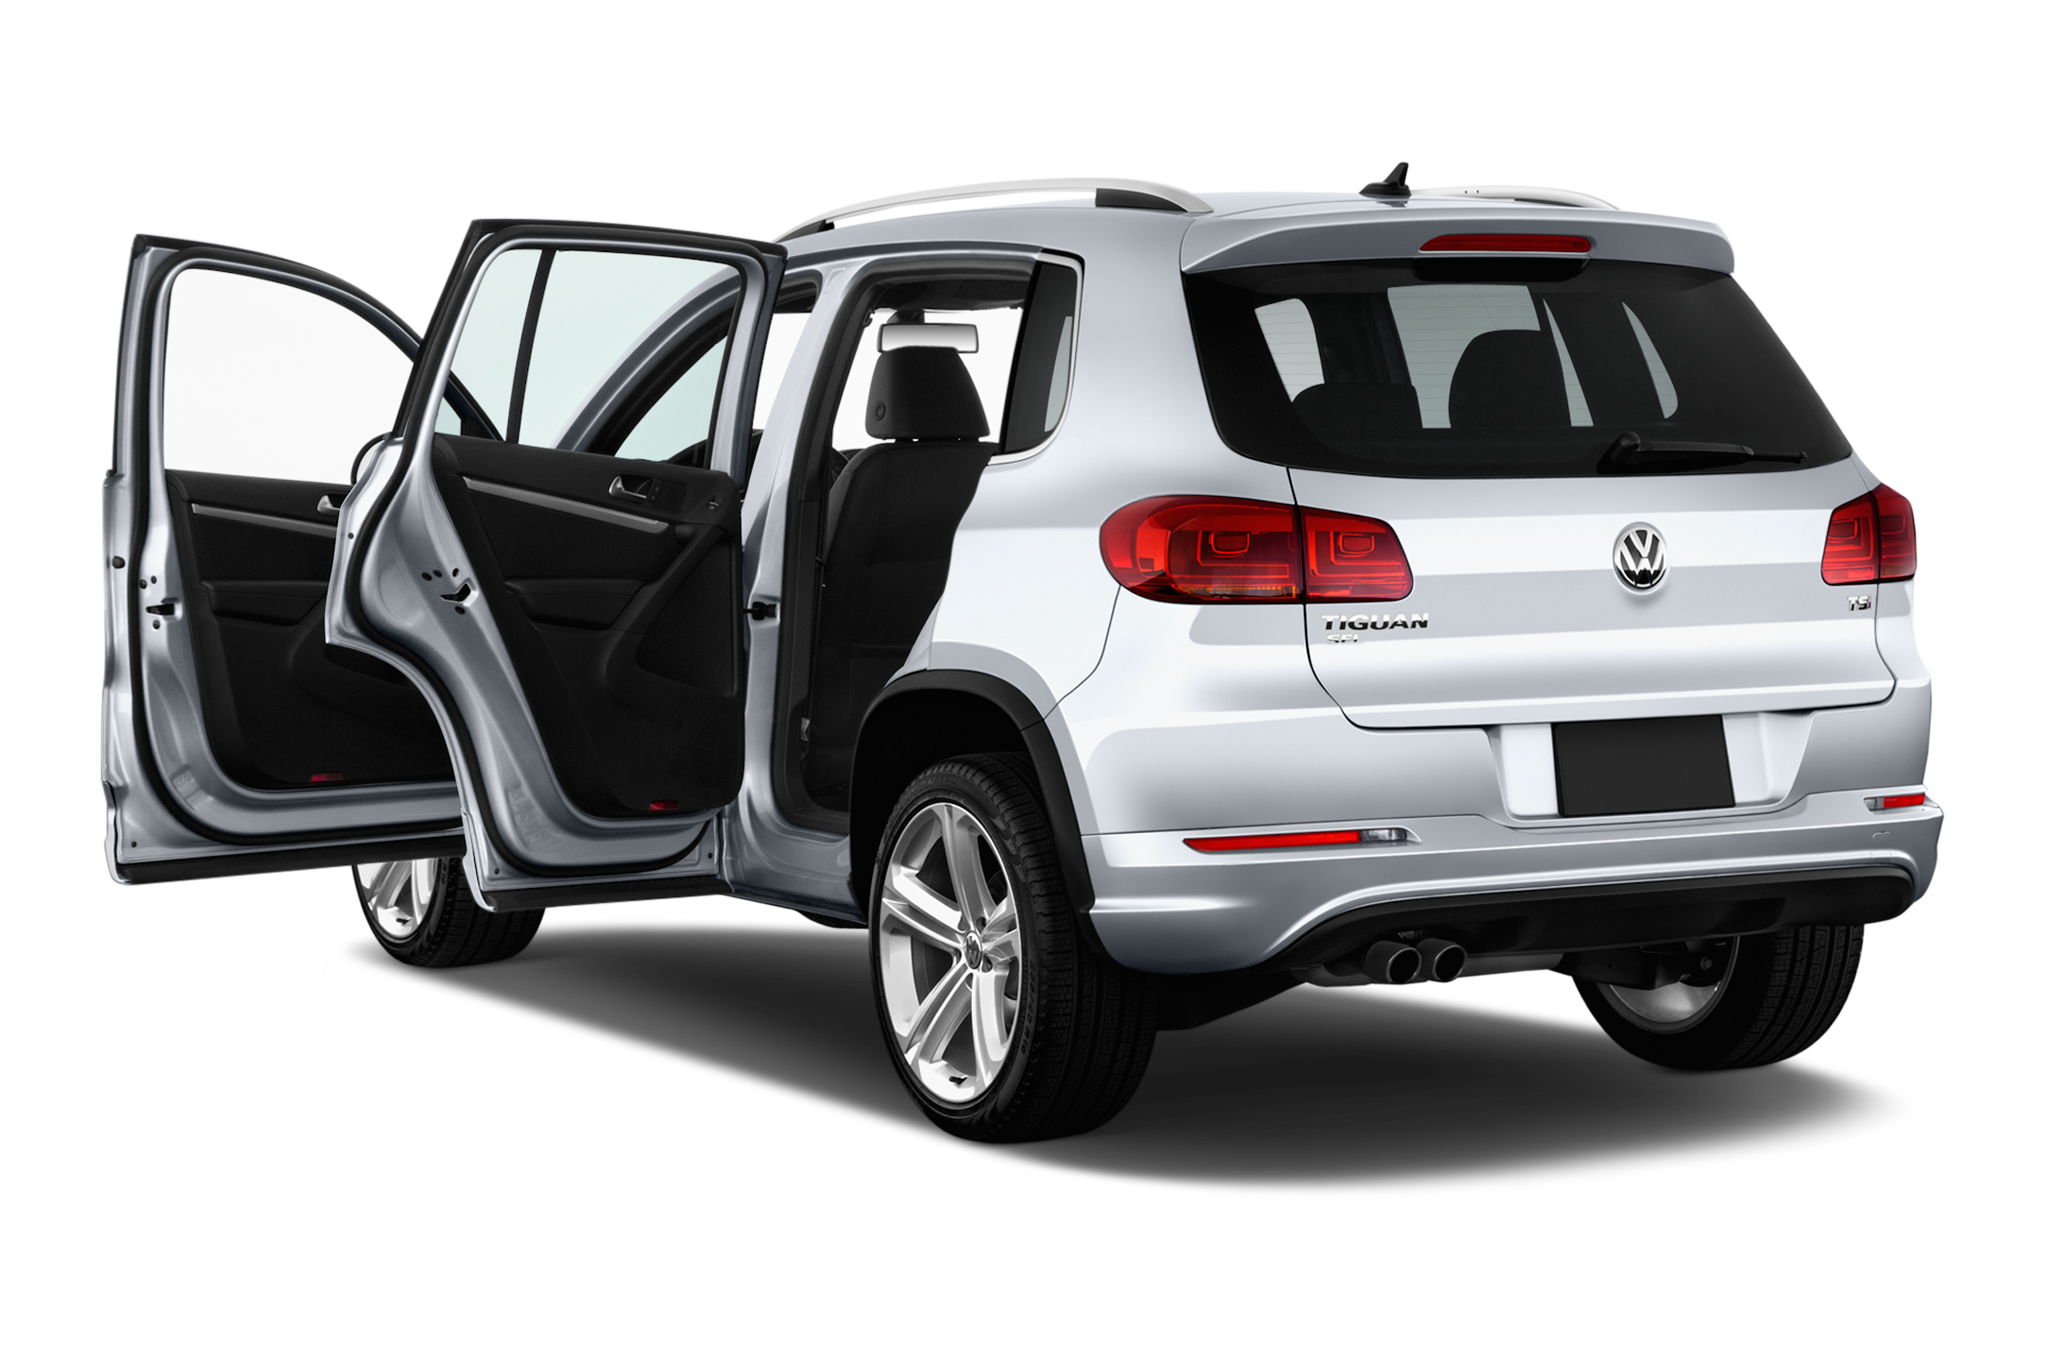 2016 volkswagen models add new infotainment systems safety features. Black Bedroom Furniture Sets. Home Design Ideas